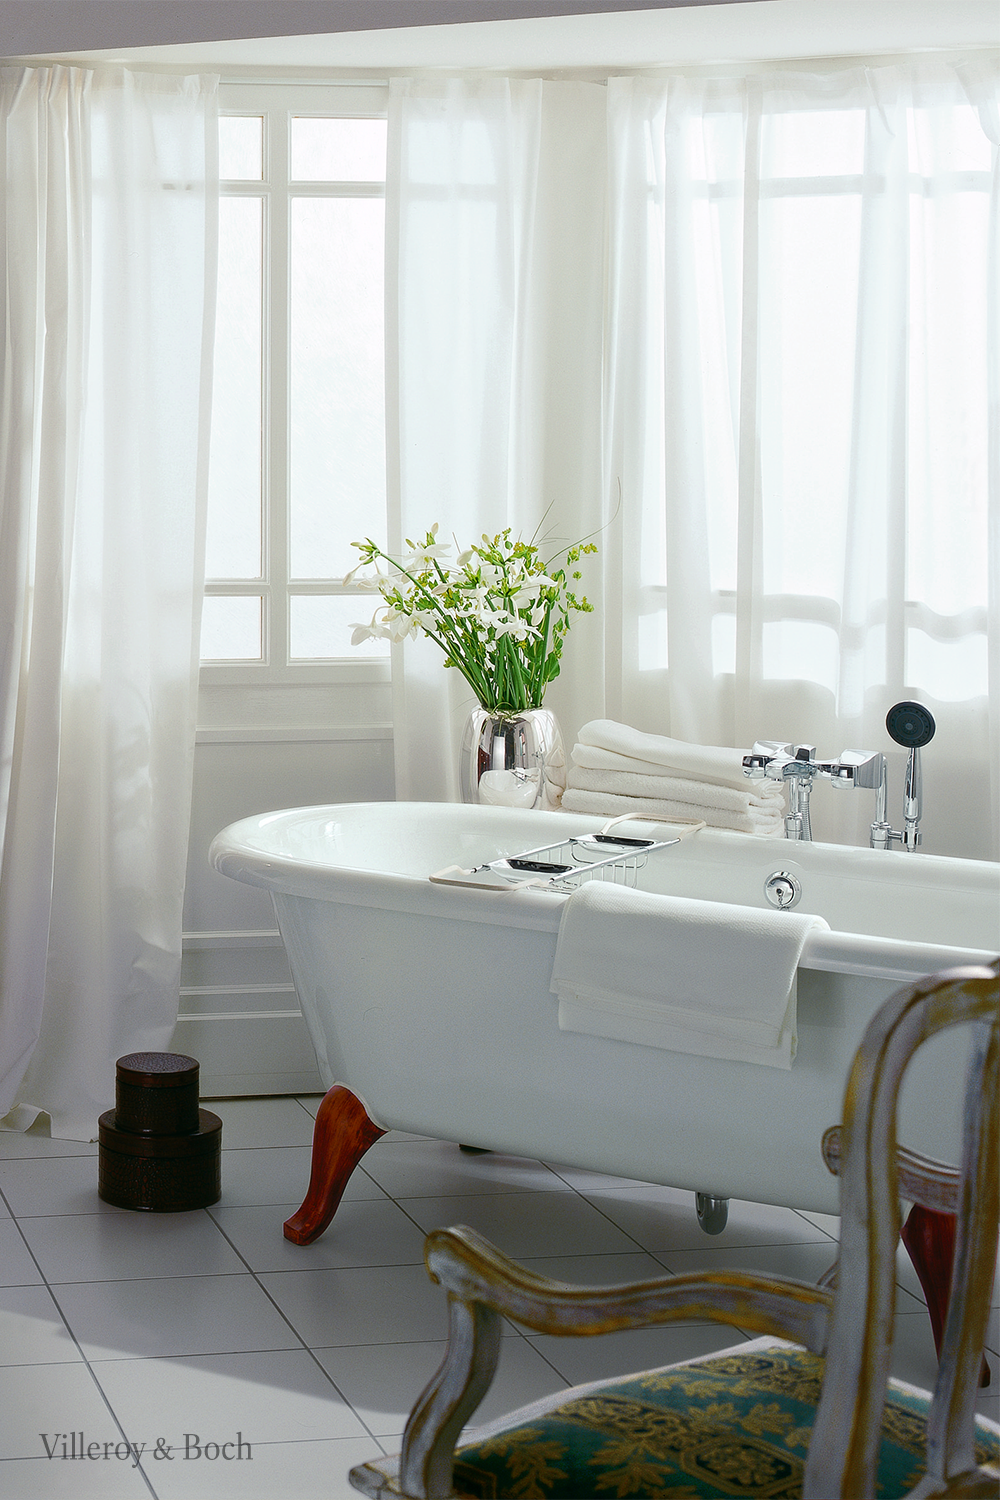 You Re Always Right Choosing A Classical Style For Your Bathroom In 2020 Rustikal Weiß Badezimmer Inspiration Bad Inspiration